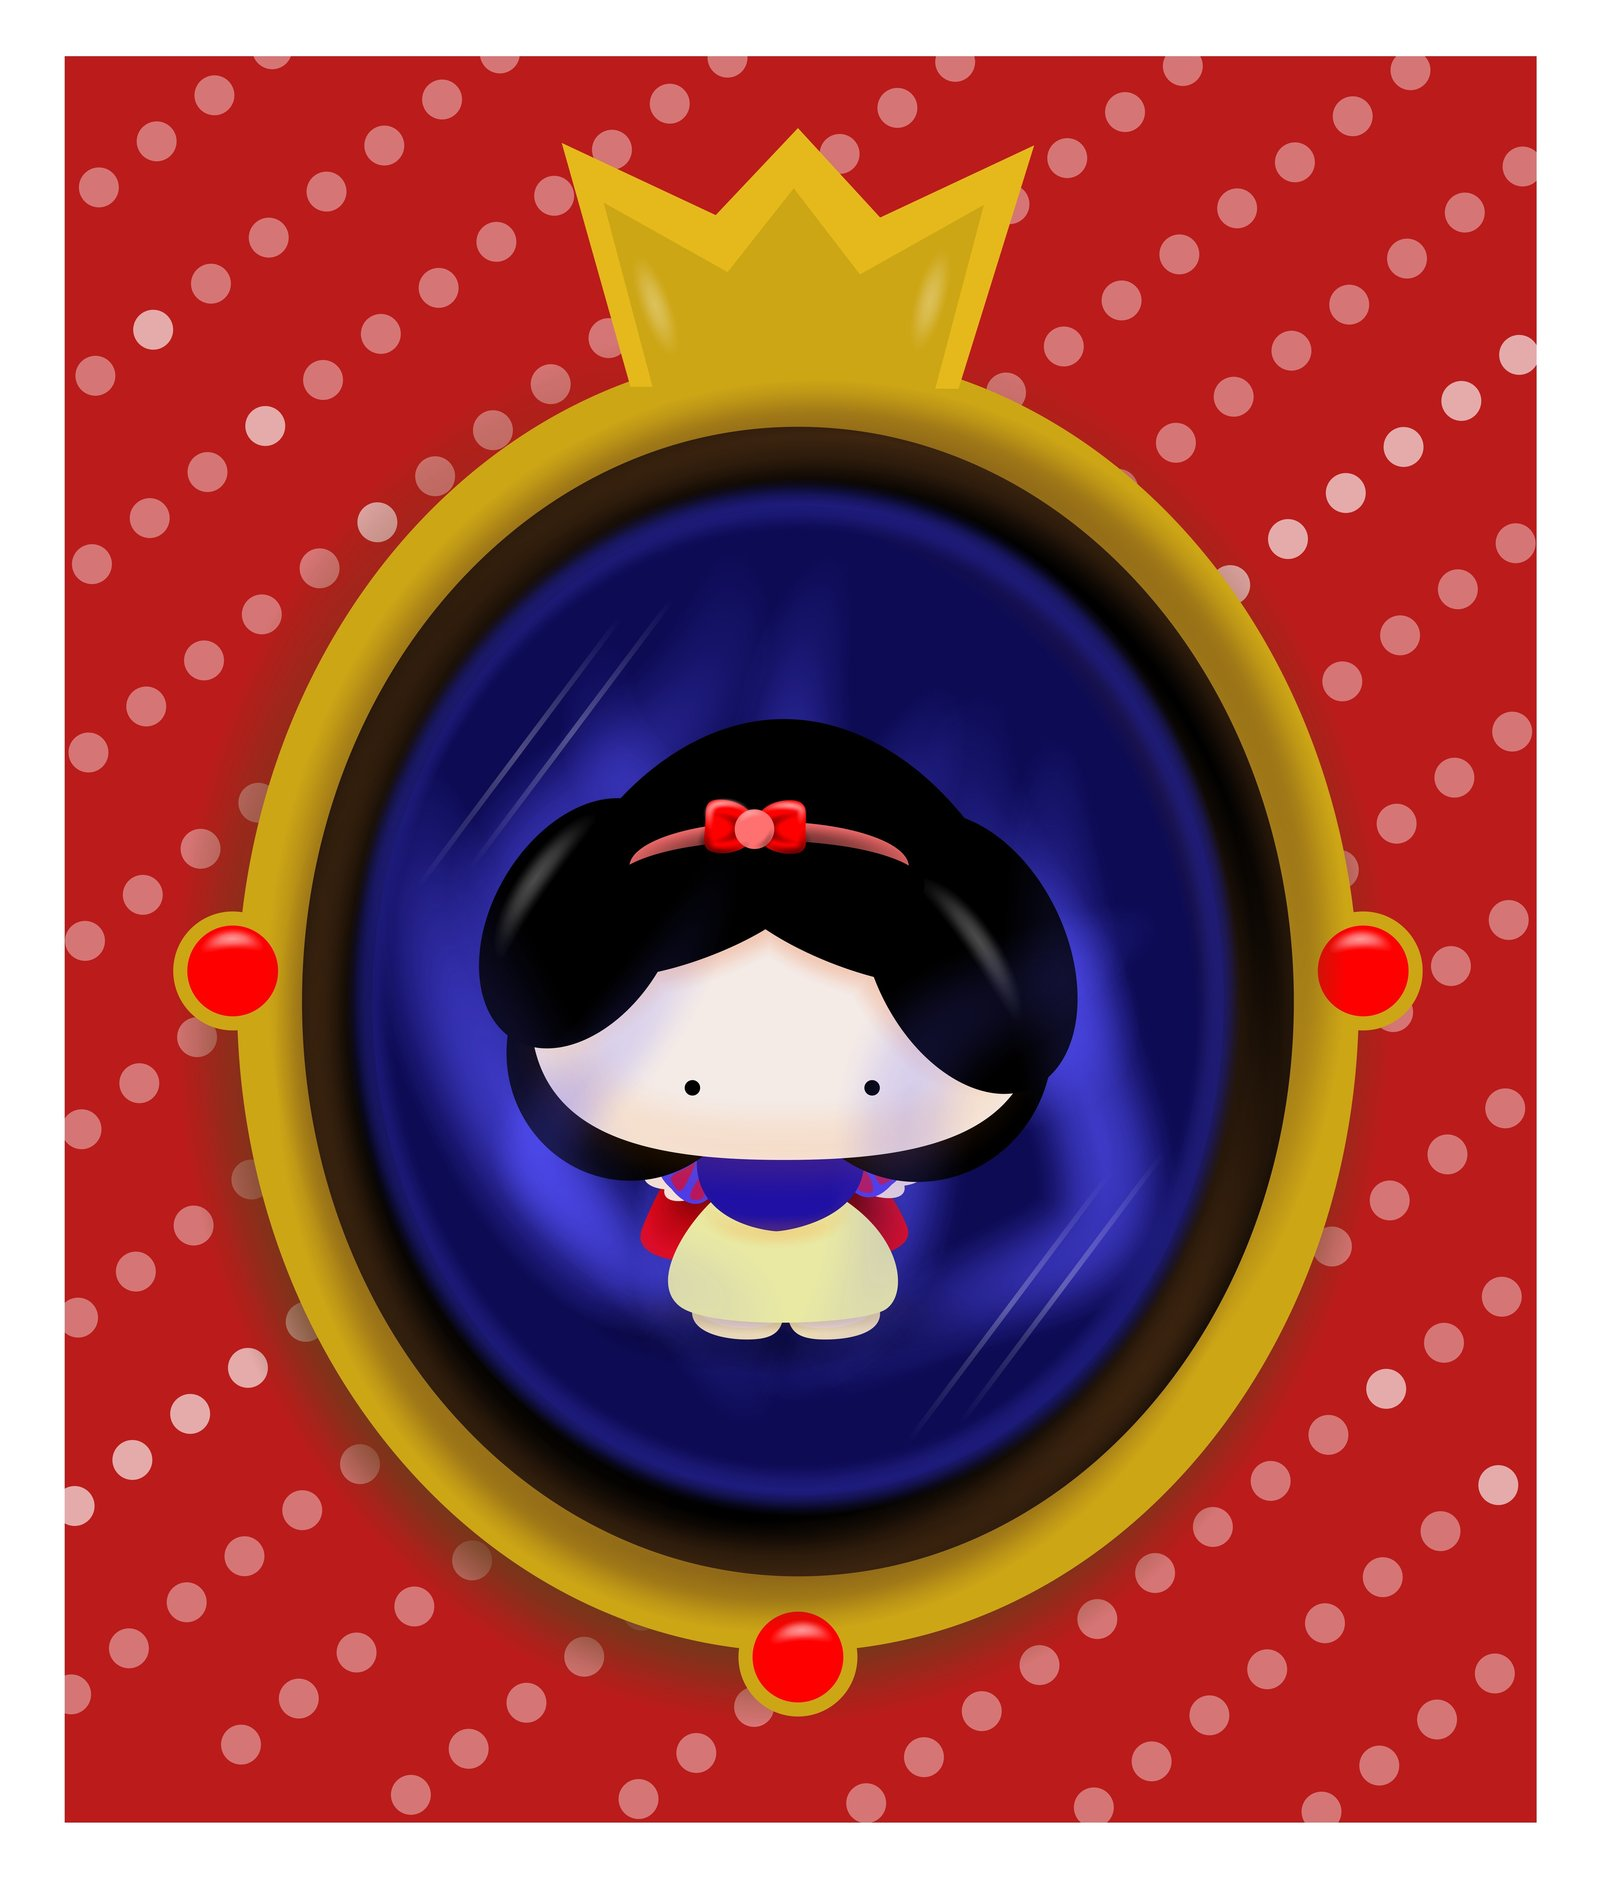 Mirror clipart snow white mirror White White on There's There's